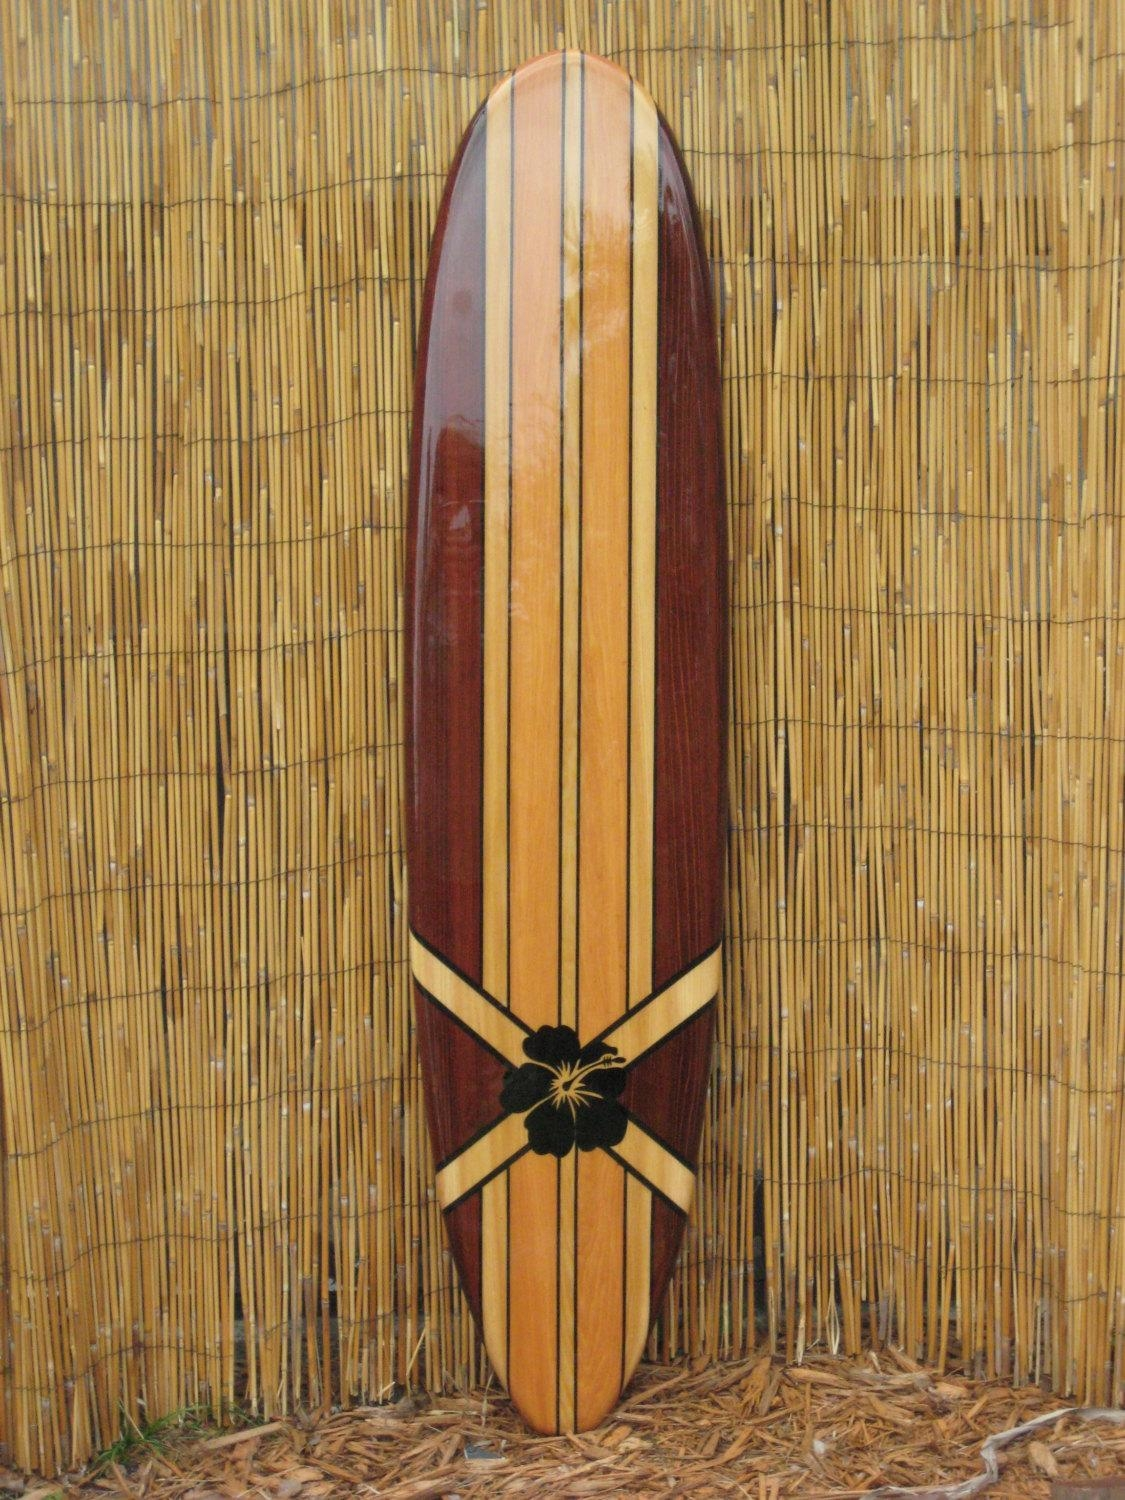 Wooden Decorative Surfboard Wall Art Wall Hanging Or Beach Within  Decorative Surfboard Wall Art (Image